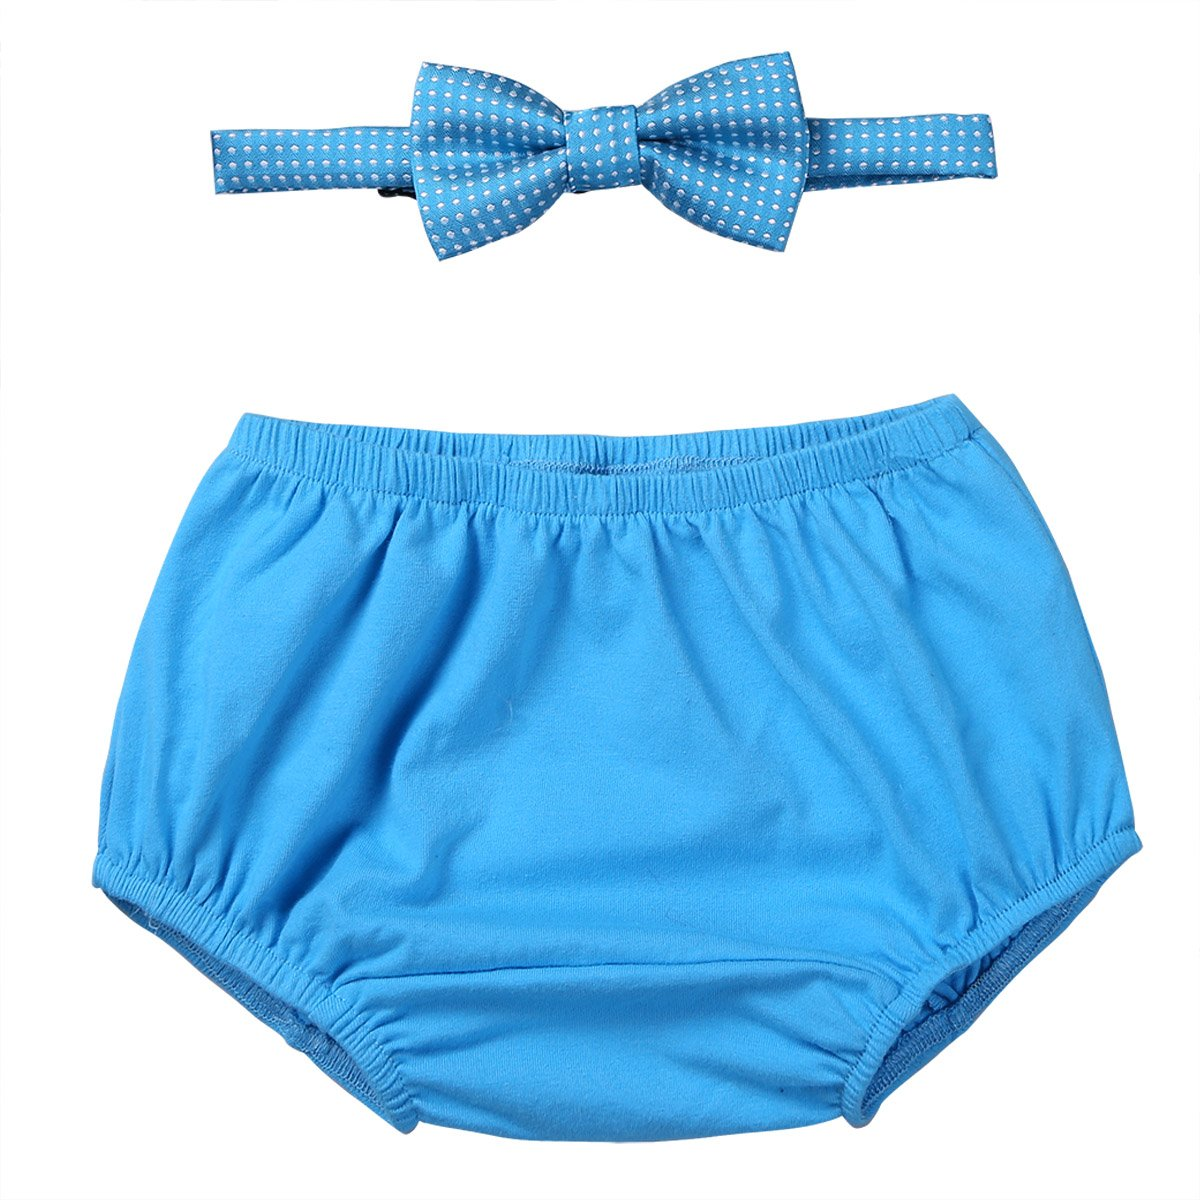 YiZYiF Baby Boys' Cake Smash Set First Birthday Cotton Stretchy Bloomers Bow Tie Outfits Set SF10046902-10065964-US